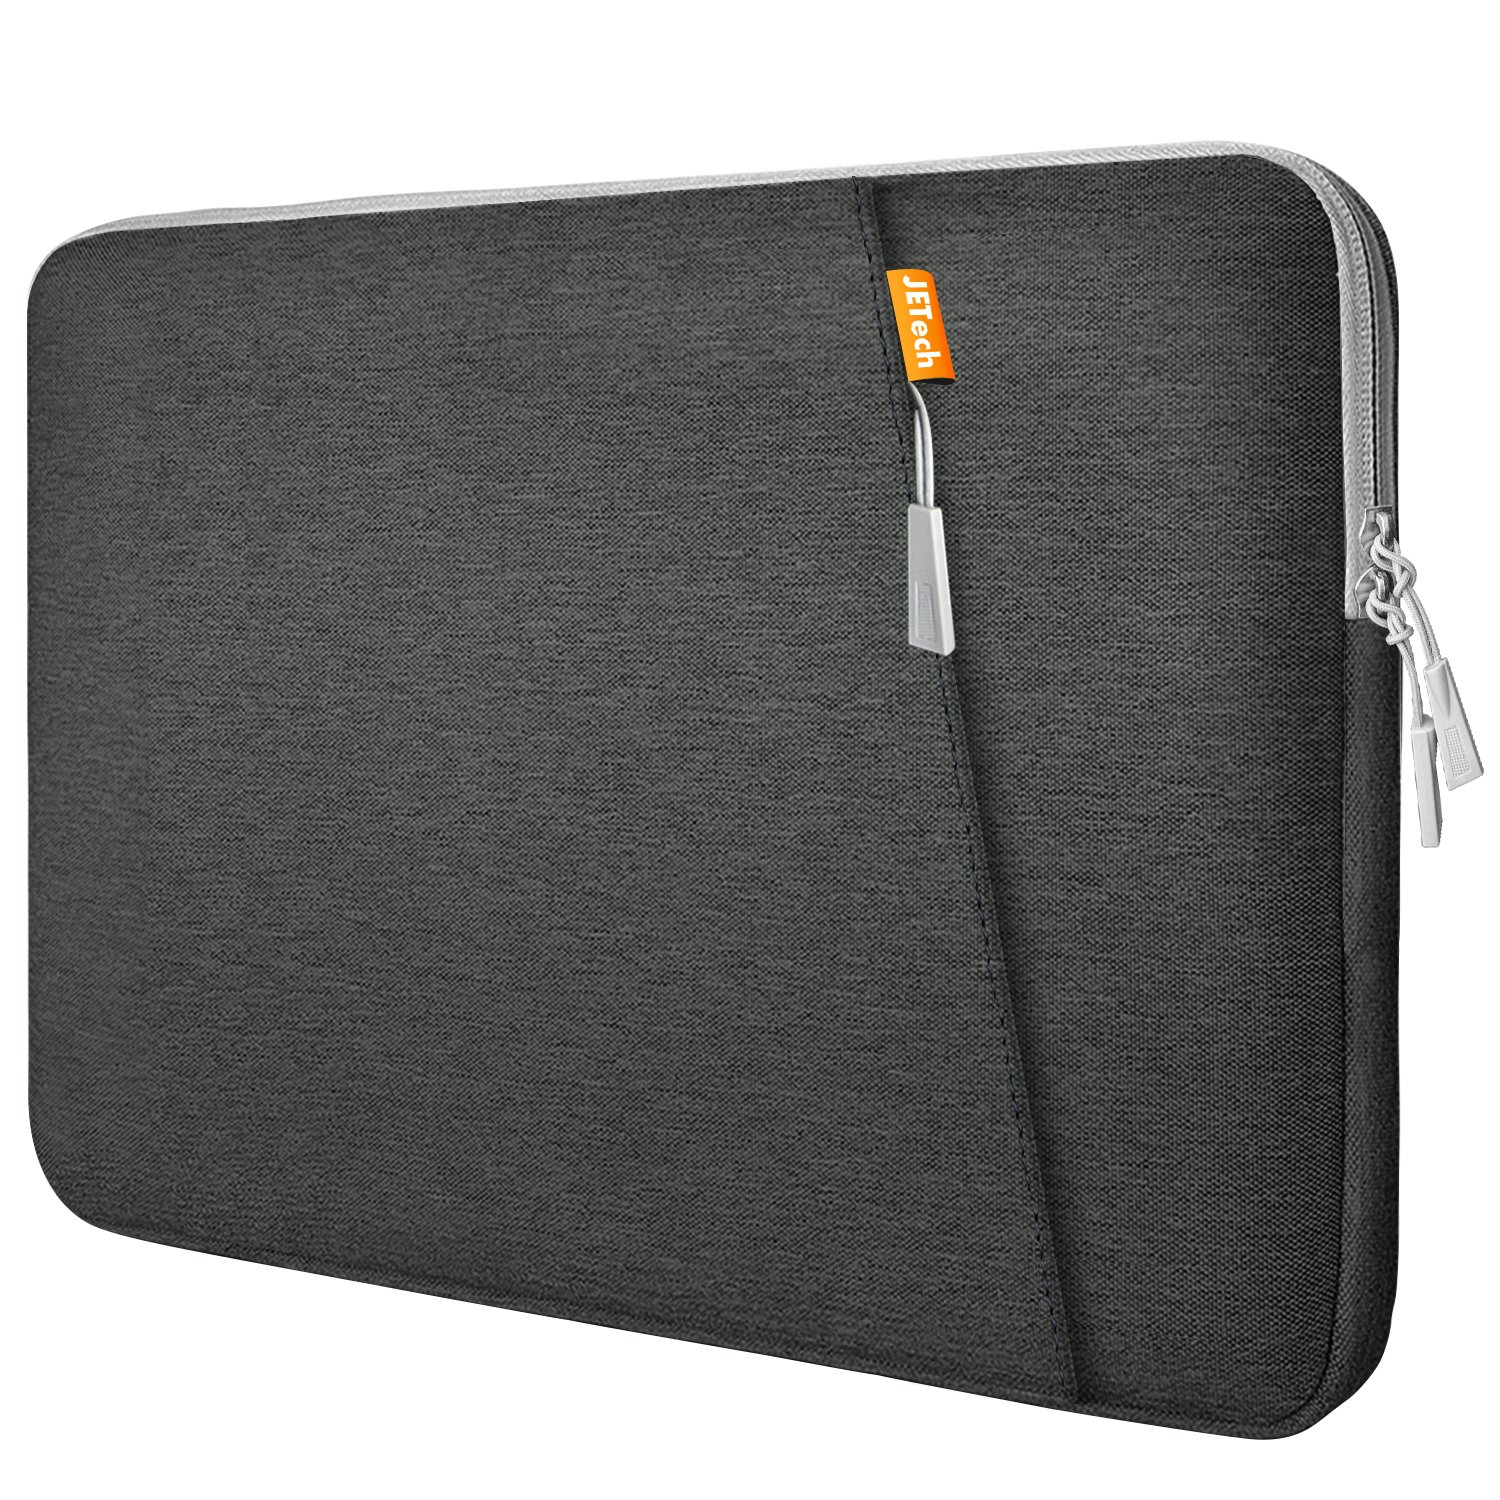 JETech Laptop Sleeve for 15.4-inch Notebook Tablet iPad Tab, Waterproof Shock Resistant Bag Case with Accessory Pocket J3732